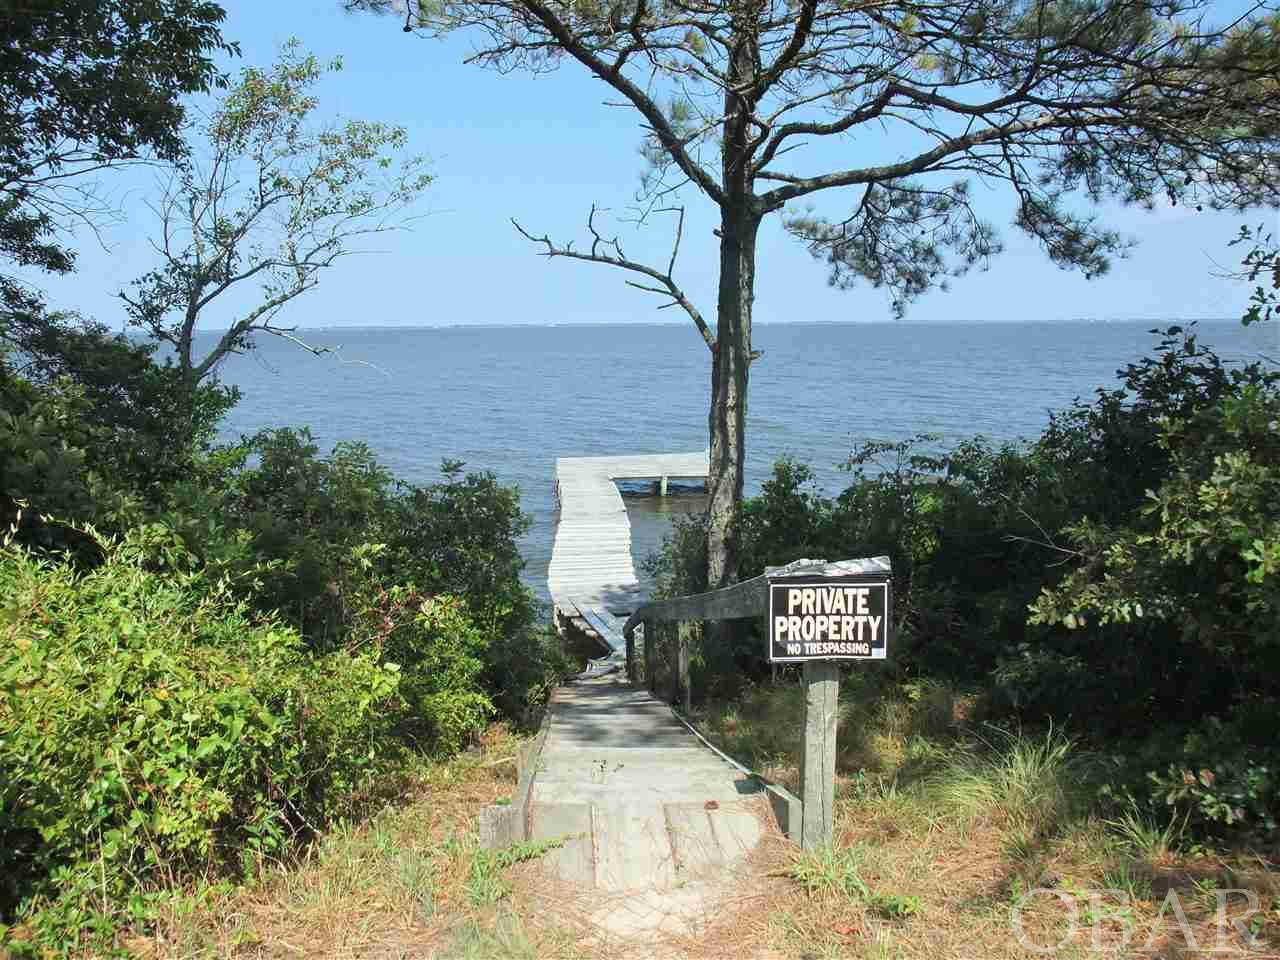 125 Lighthouse View,Aydlett,NC 27916,3 Bedrooms Bedrooms,2 BathroomsBathrooms,Residential,Lighthouse View,101494